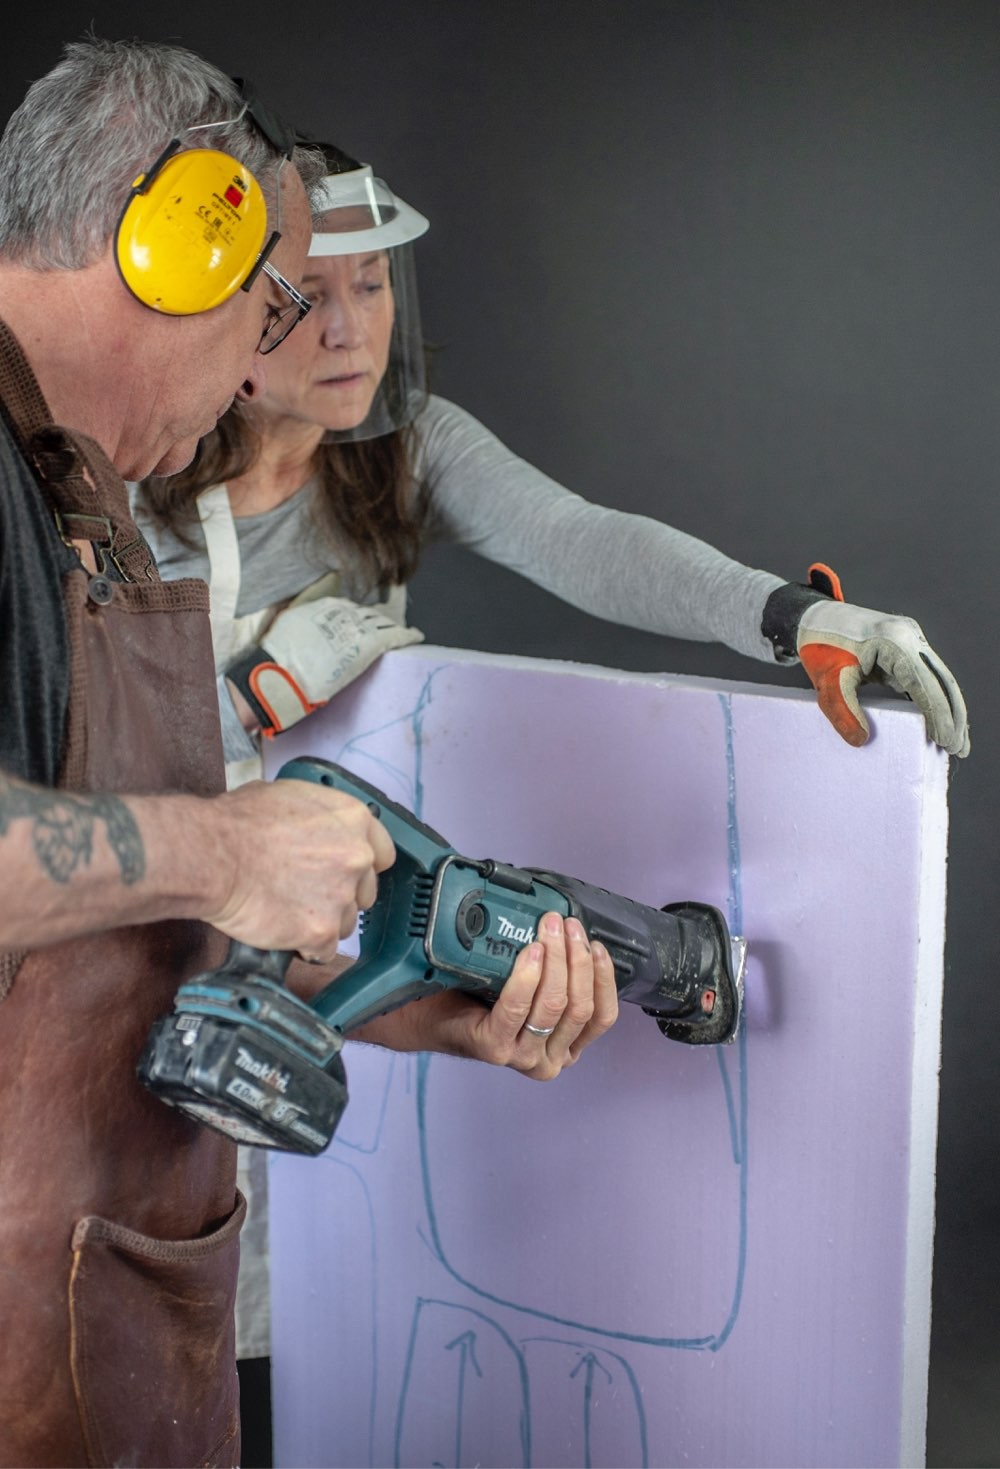 Tiina holds a foam plate while Sean uses an electric saw